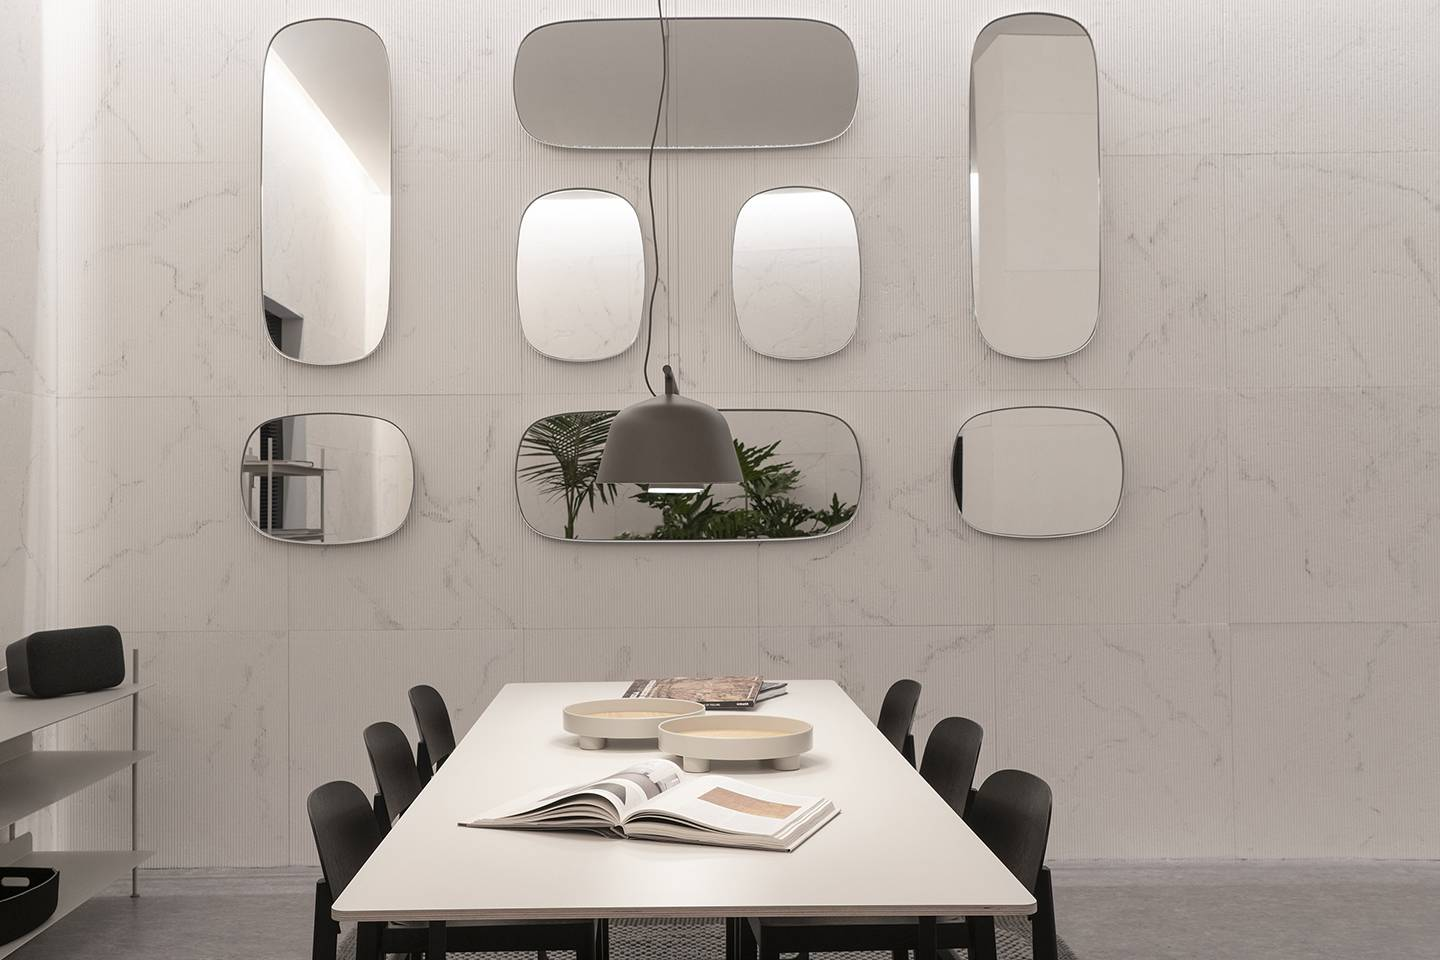 A dining room with natural marble walls, round mirrors, and sleek furniture